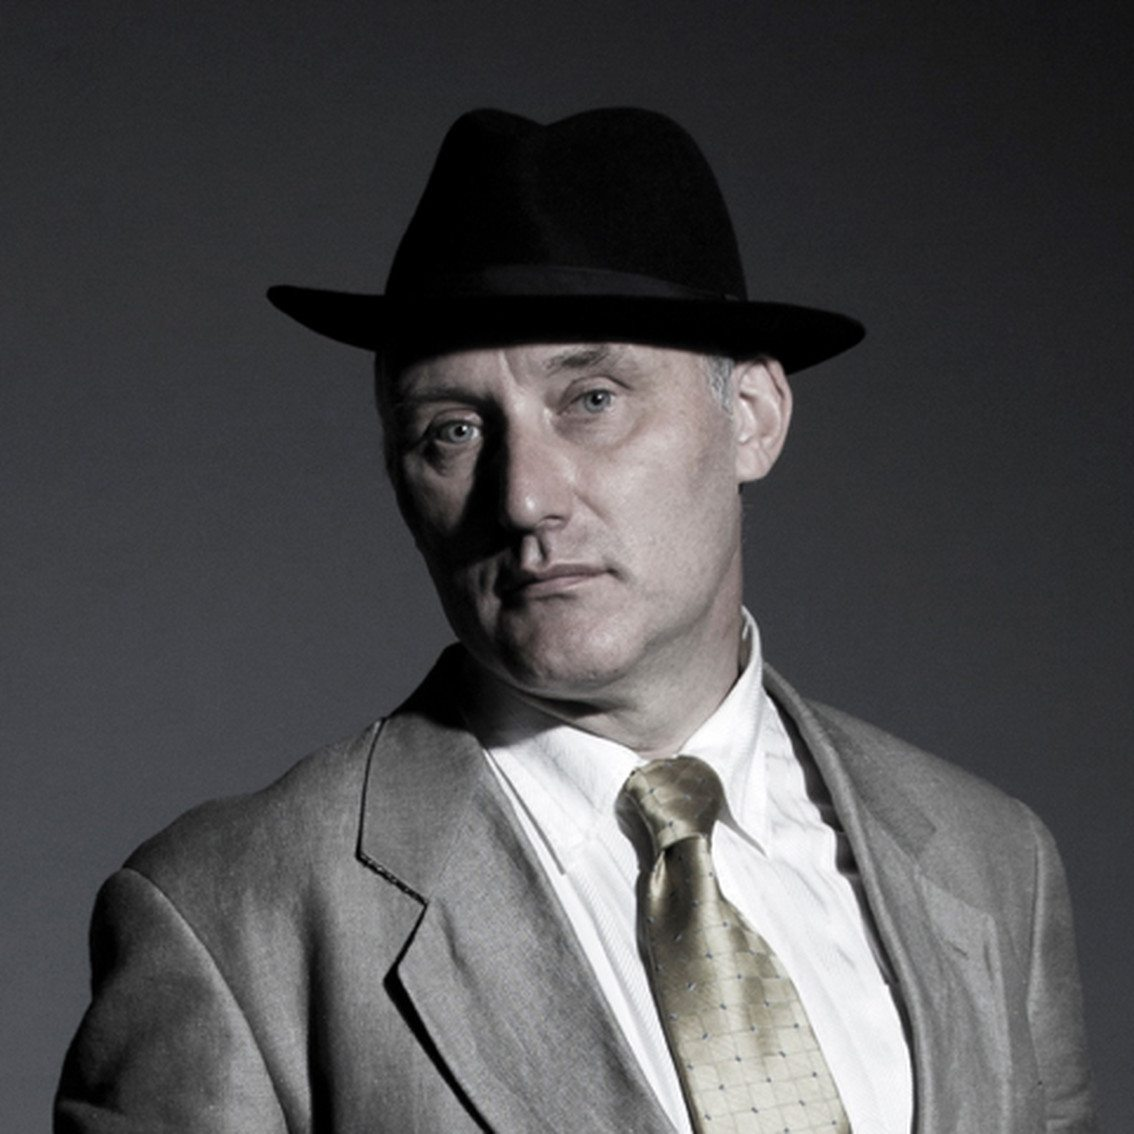 Jah Wobble And The Invaders Of The Heart unveil new video:'Cosmic Love' - watch it on Side-Line.com